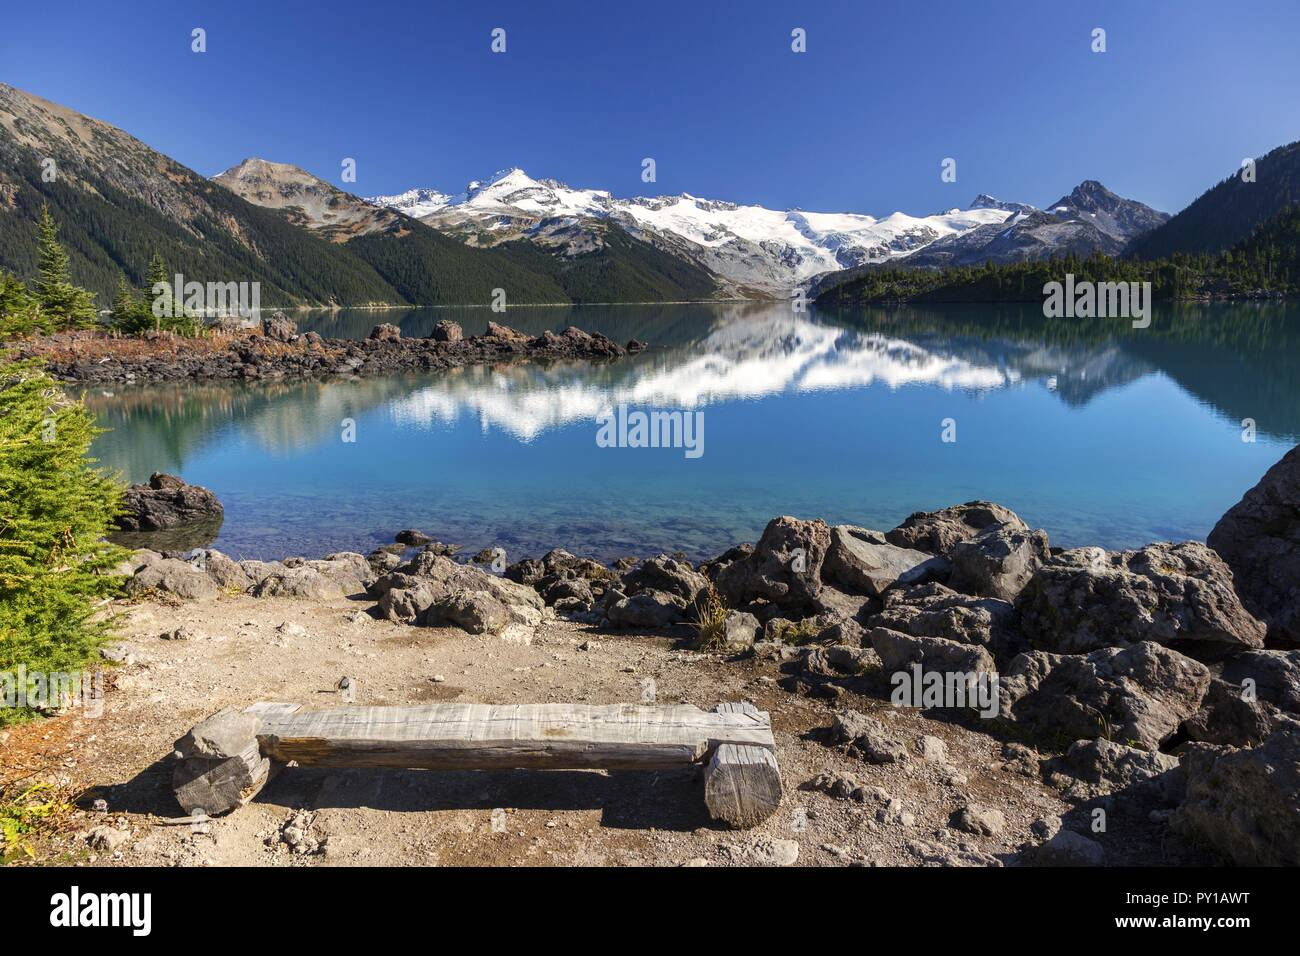 wooden-log-bench-and-distant-snowcapped-